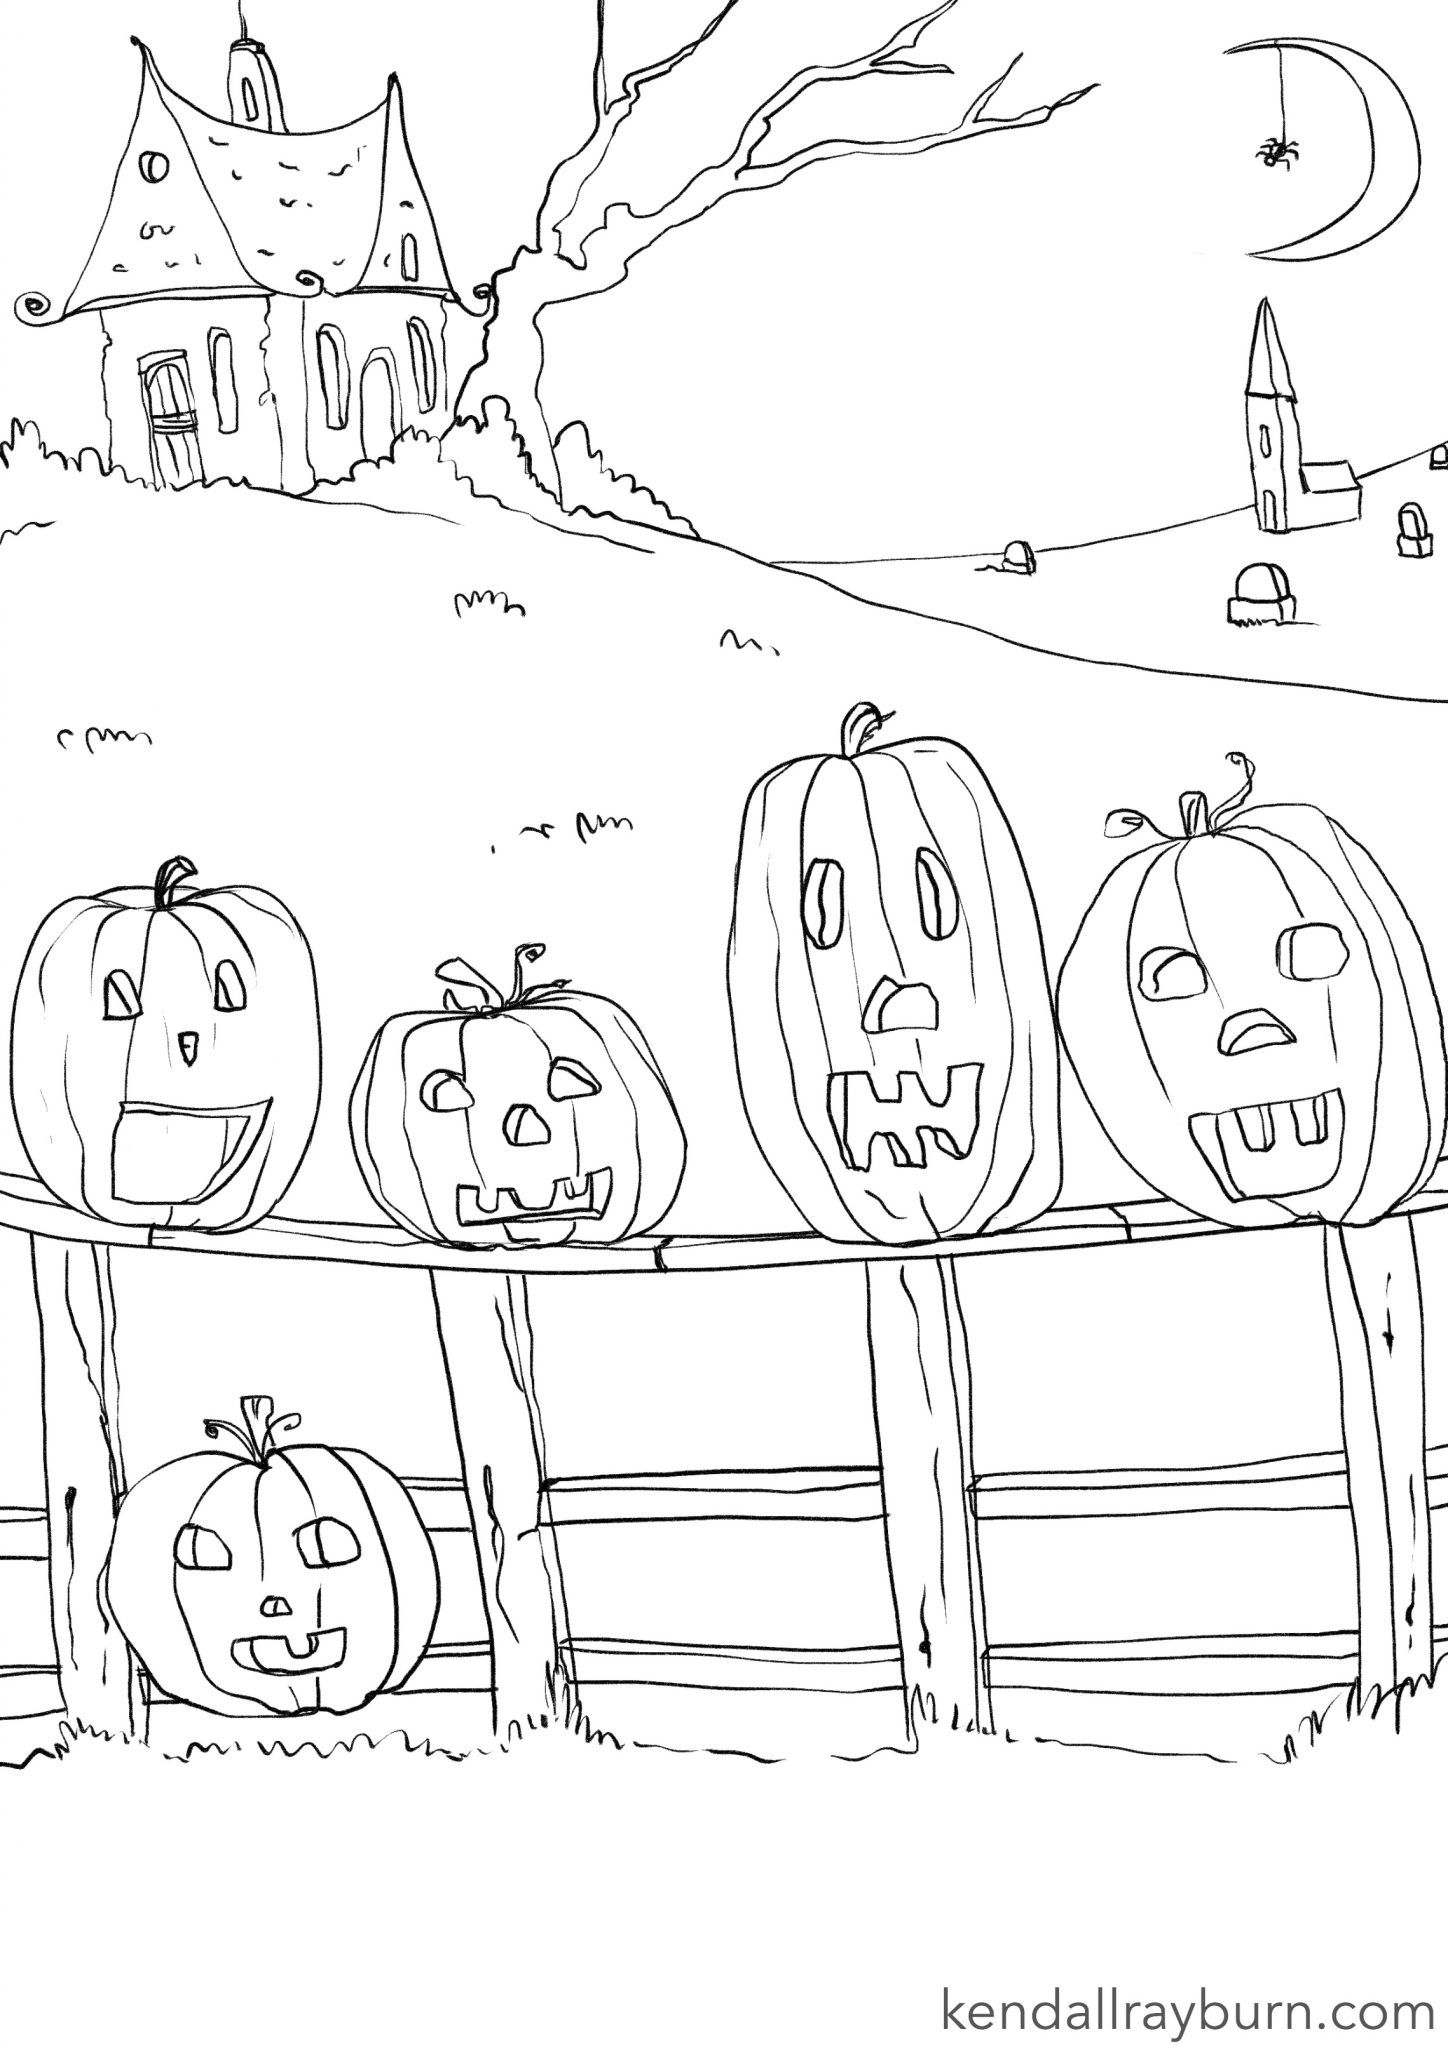 5 Little Pumpkins Coloring Sheet Pumpkin Coloring Sheet 5 Little Pumpkins Coloring Sheets